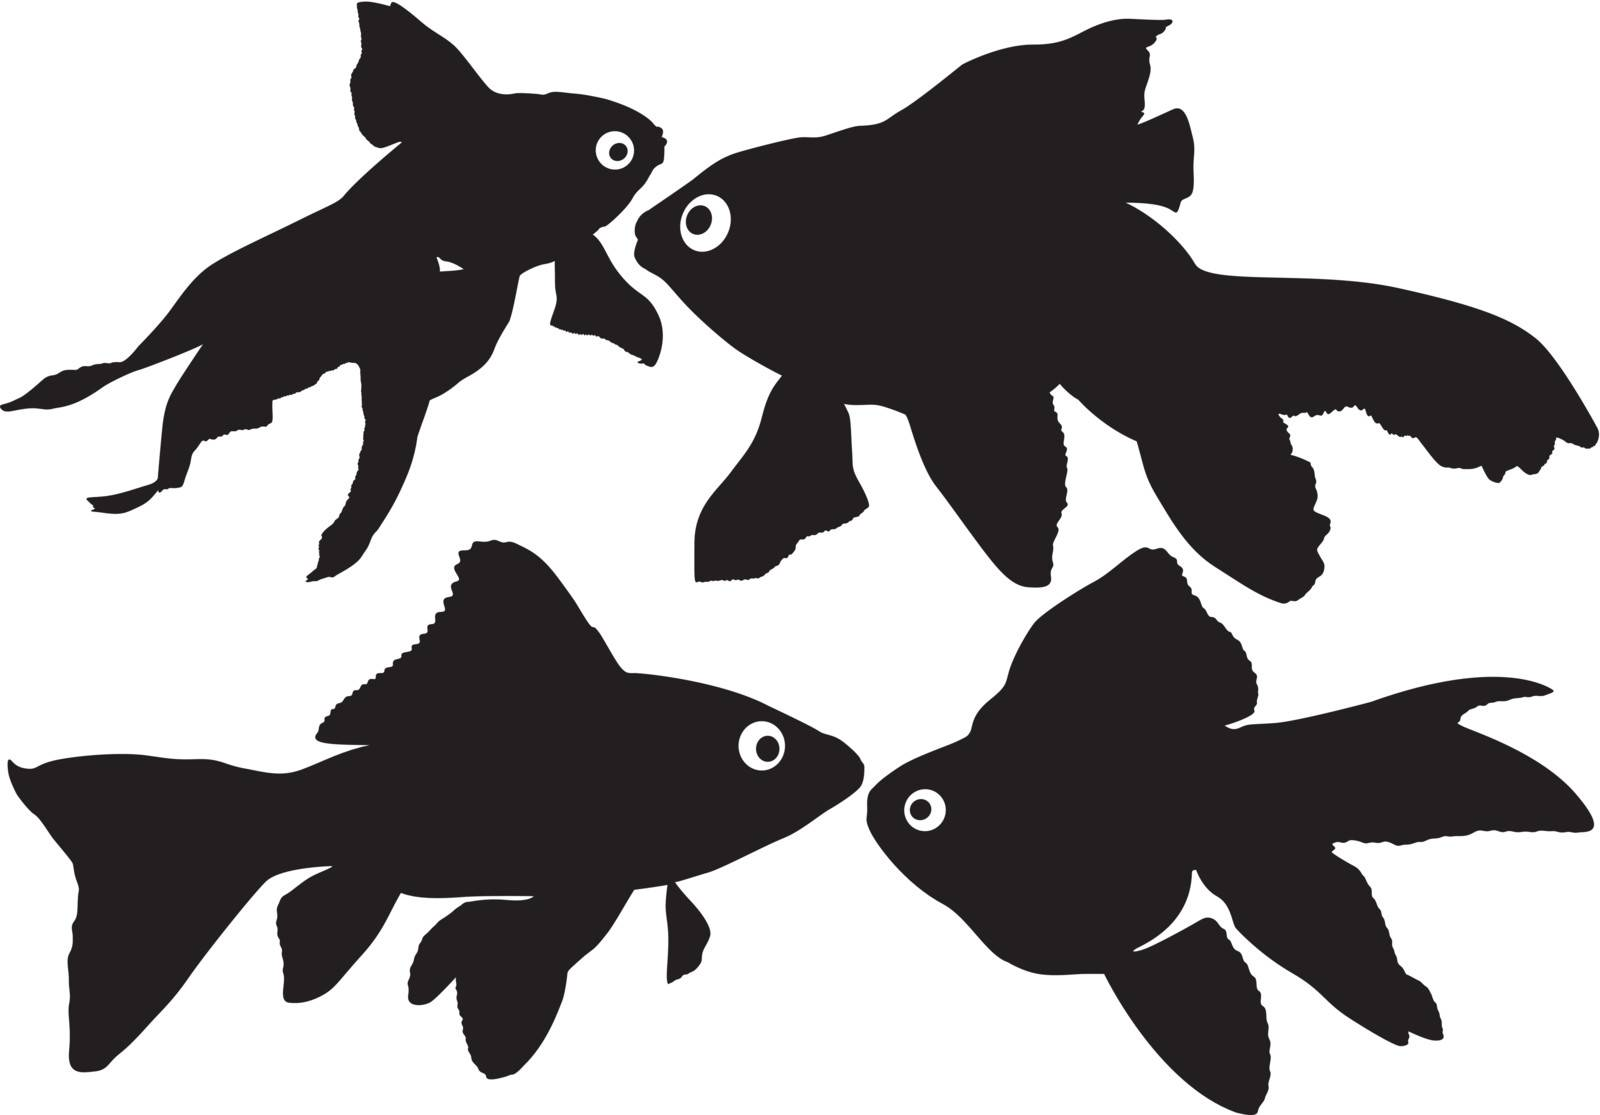 Goldfish vector silhouettes by only4denn